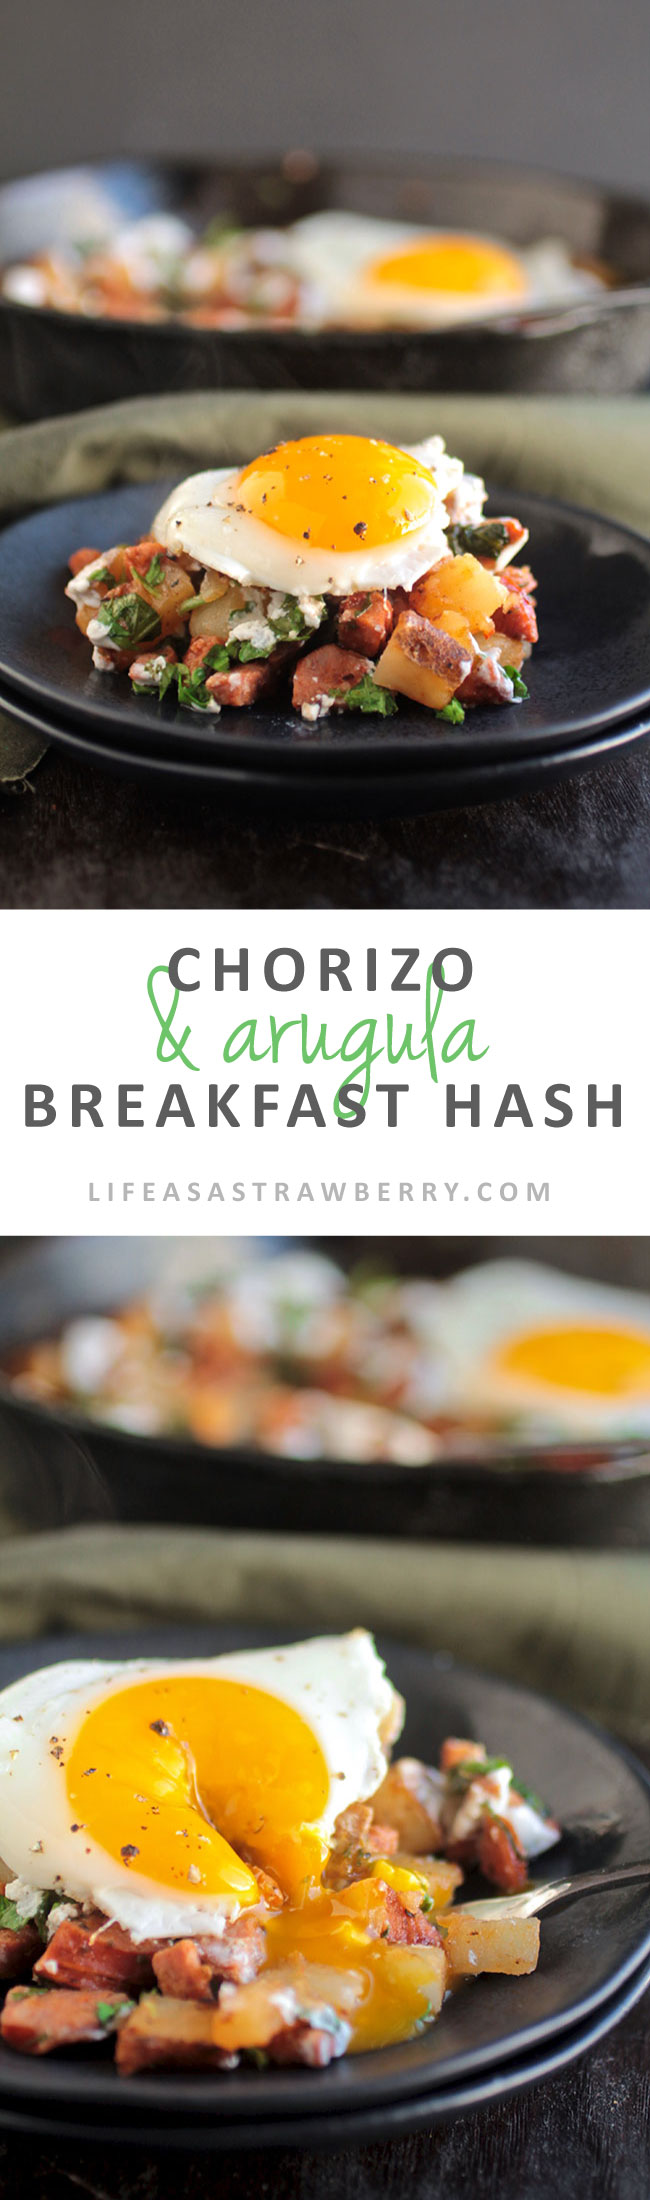 30 Minute Chorizo & Arugula Breakfast Hash with Lime Greek Yogurt Crema | This quick and easy breakfast hash recipe has spicy chorizo sausage, fresh arugula, and a delicious Greek yogurt sauce to tie it all together. Serve with fried eggs for a fun brunch recipe!